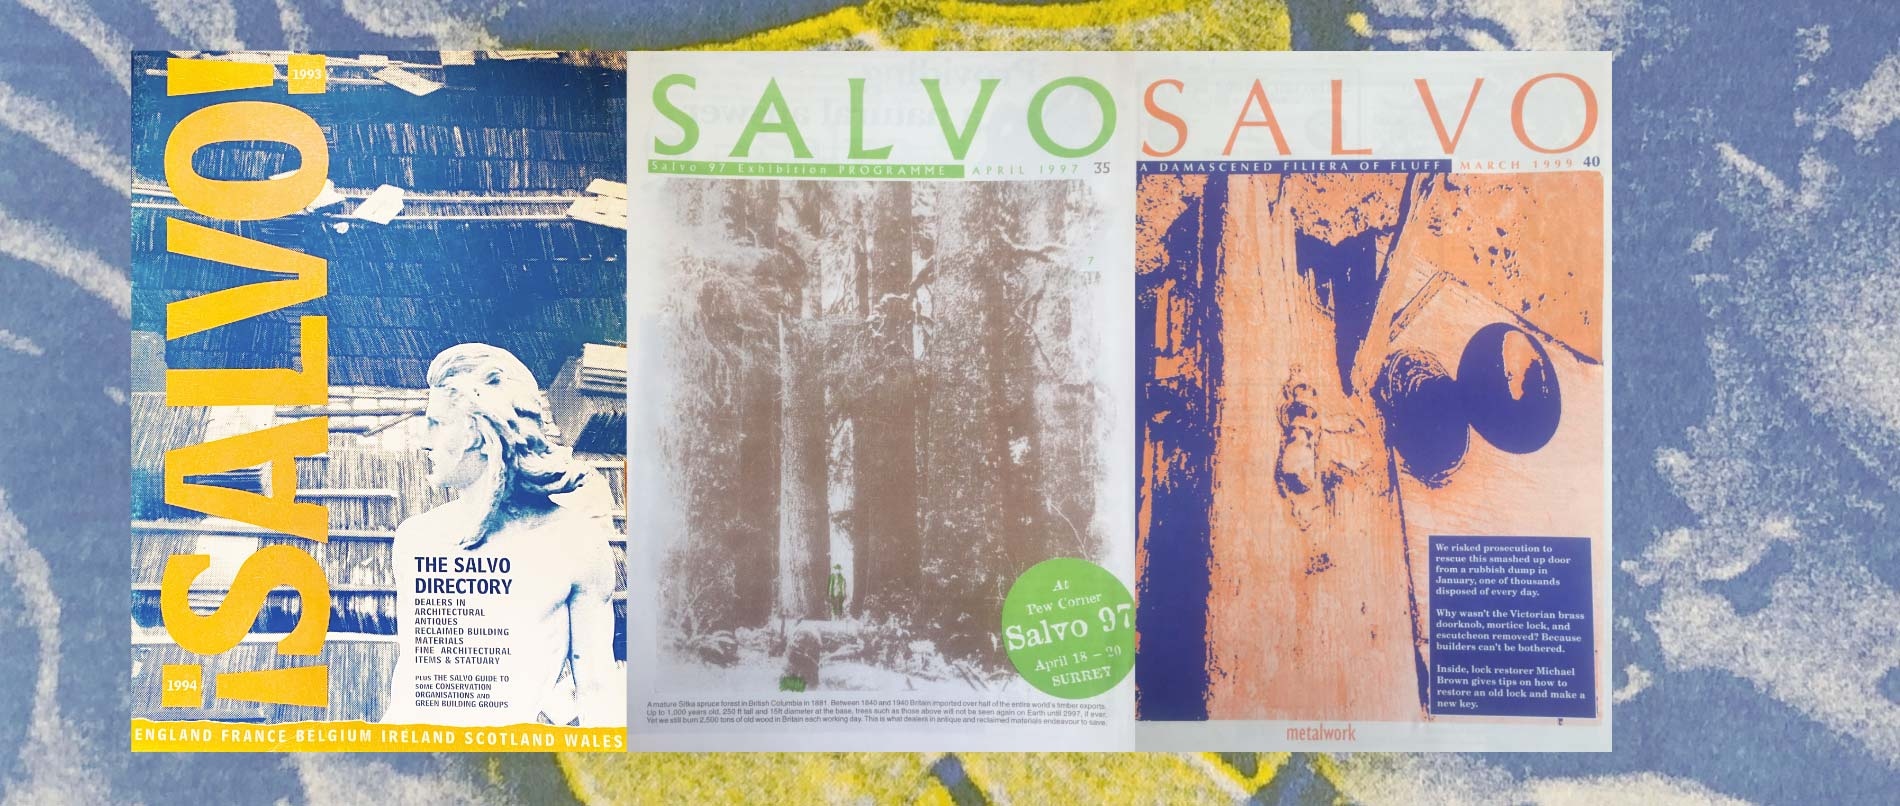 About Salvo